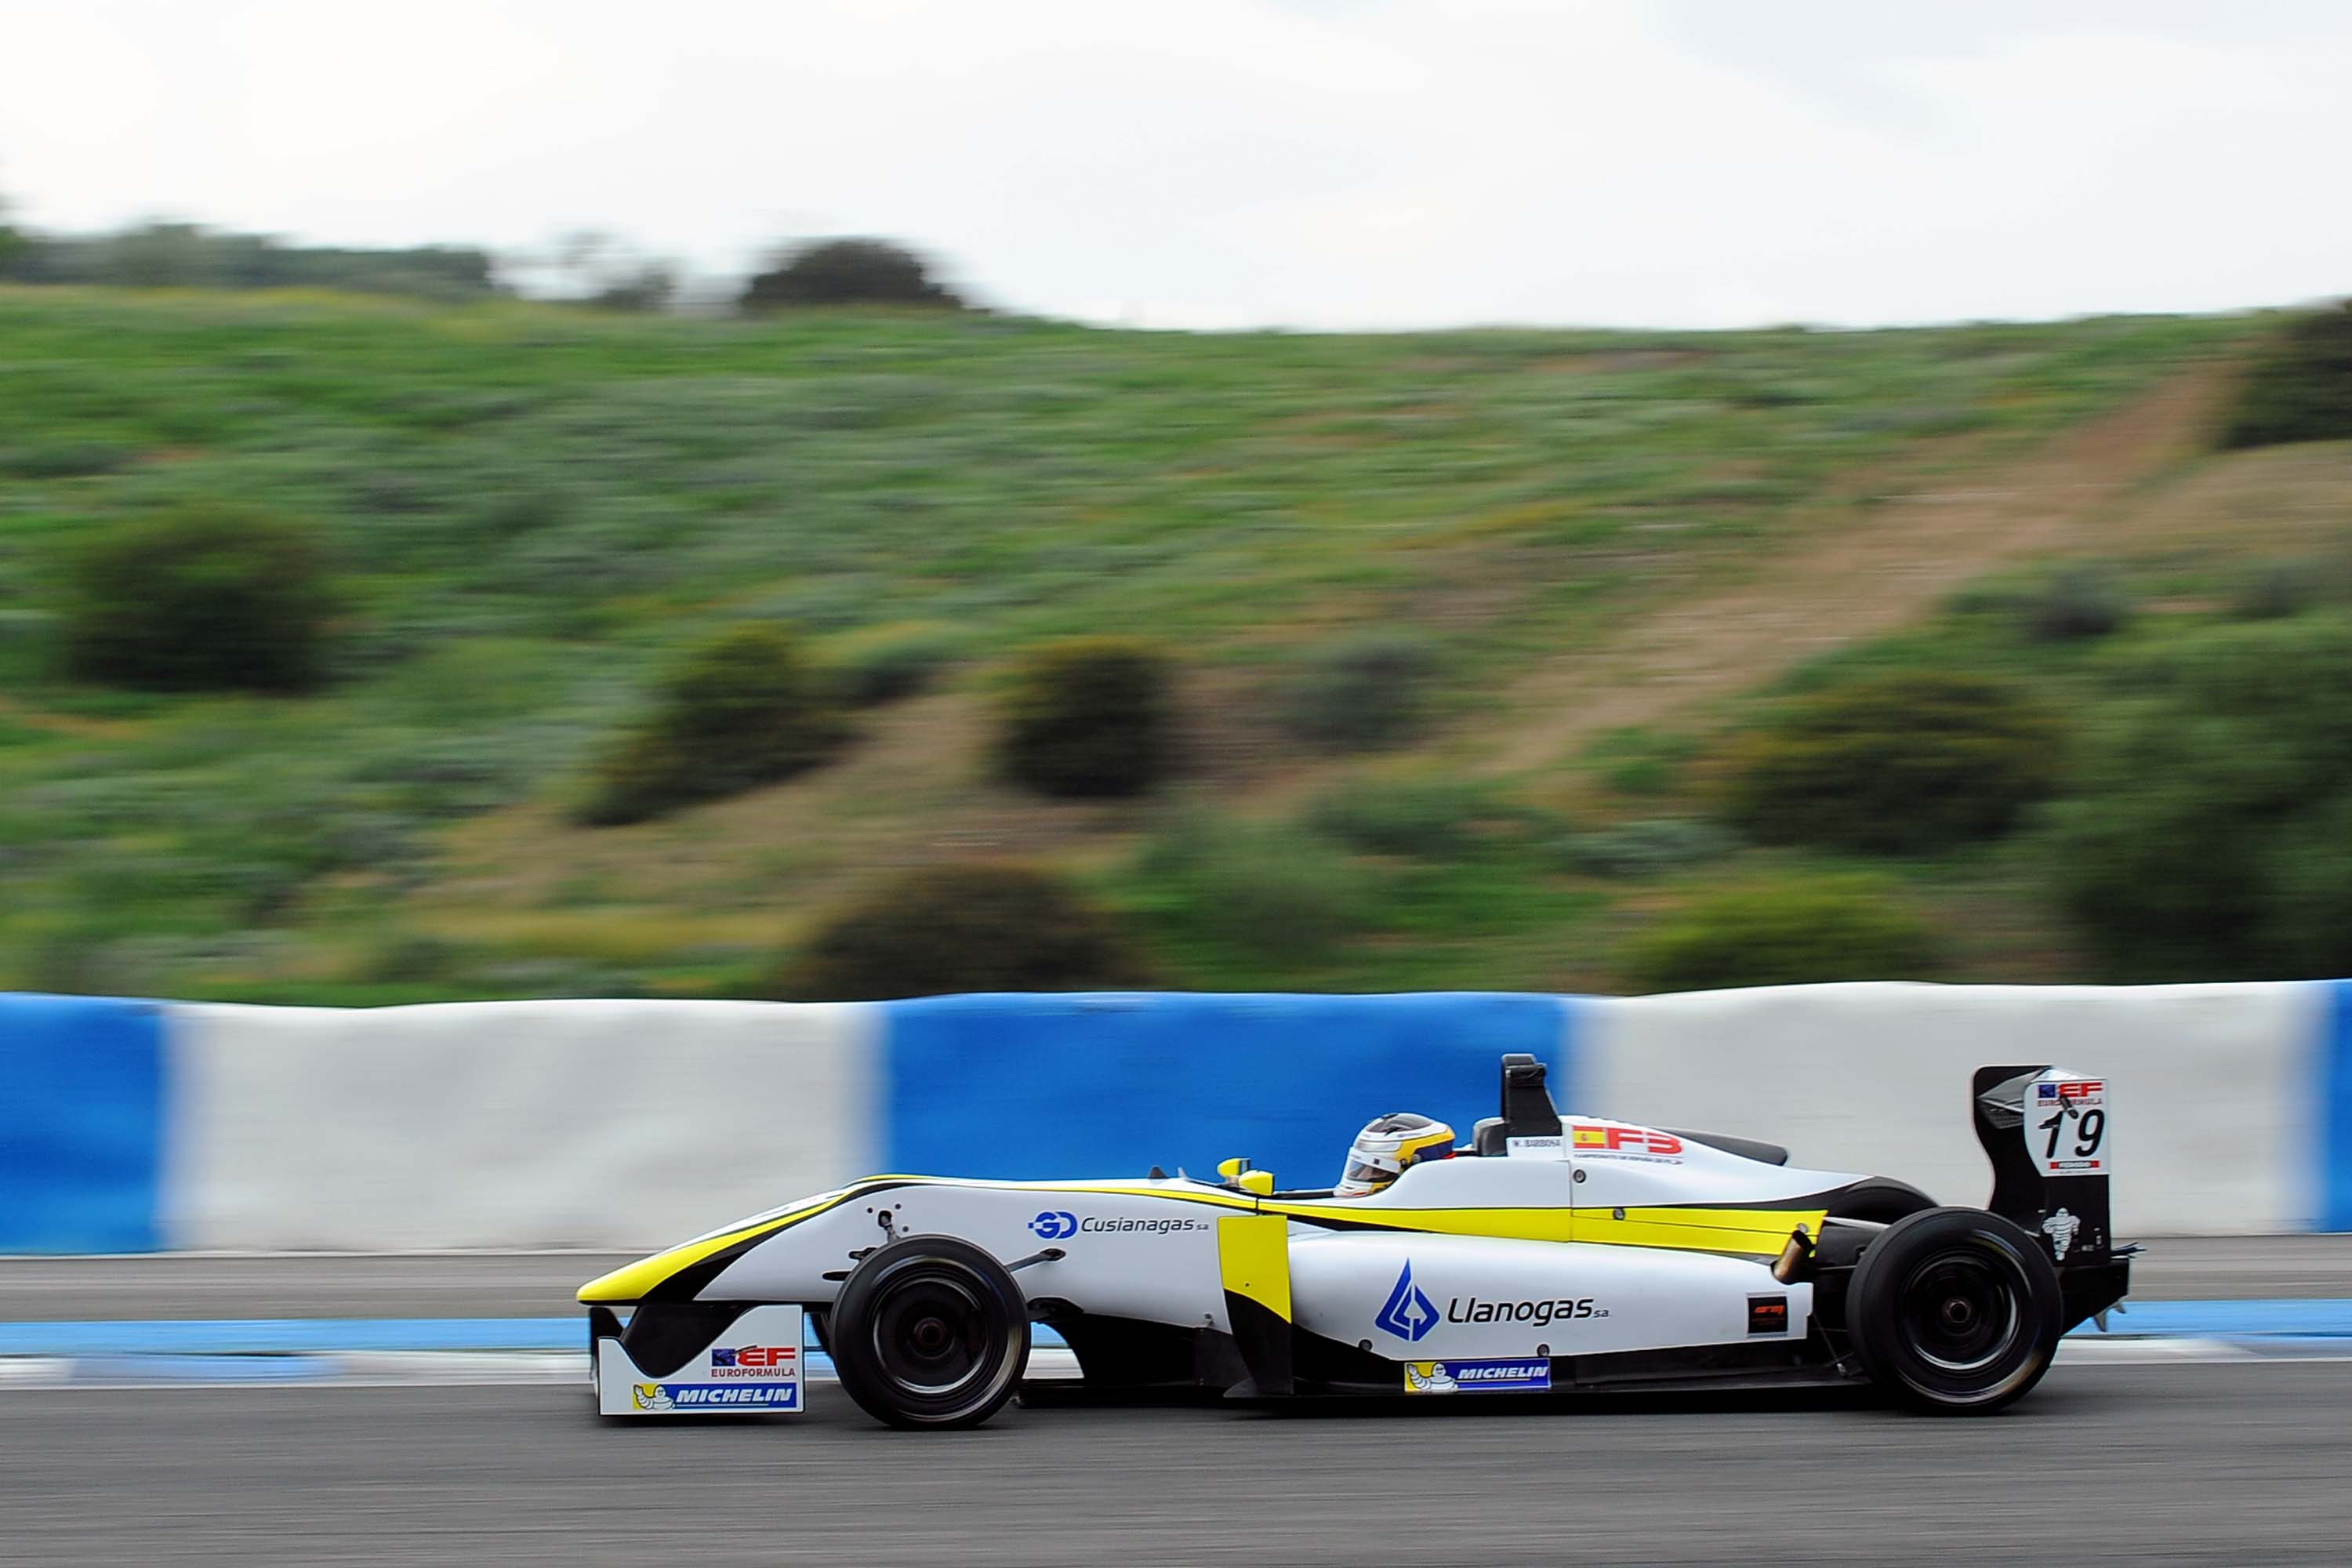 WilliamBarbosa G EuroformulaOpen Jerez Abril 11_Race 1.jpg